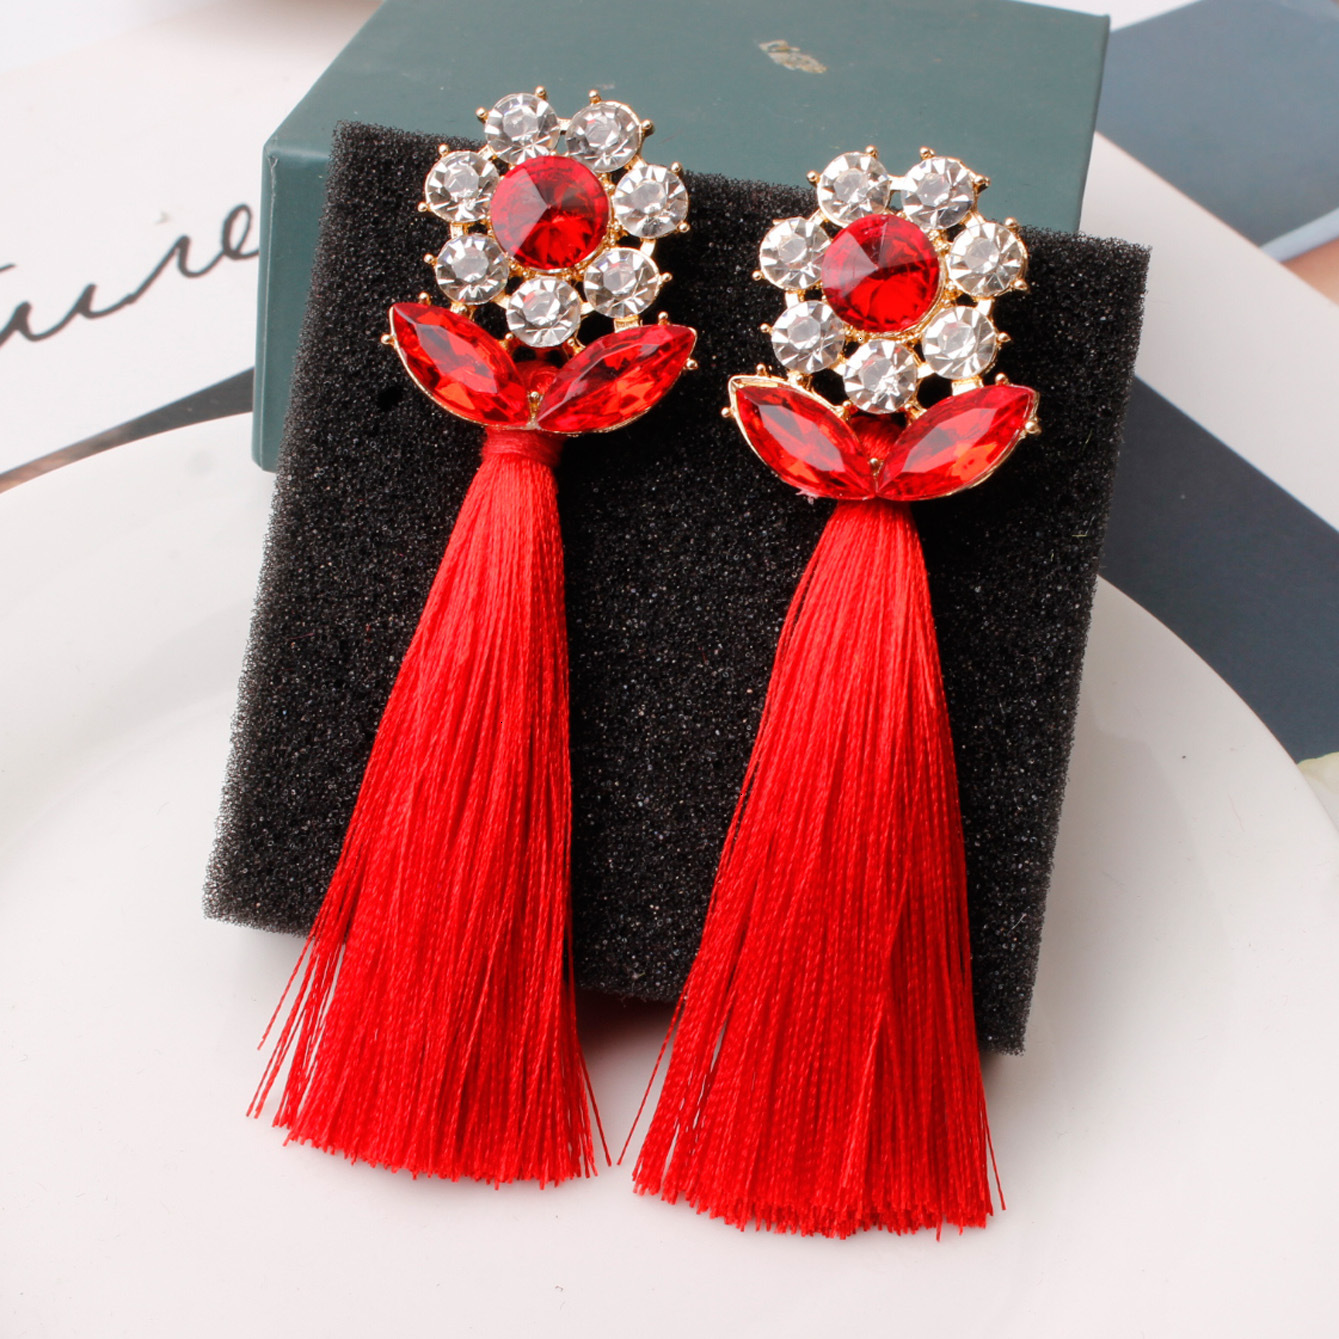 Top Quality Tassel Earrings For Women Crystal Statement Ear Rings Crystal Gift Wife Christmas Party Birthday Boucle D'oreille